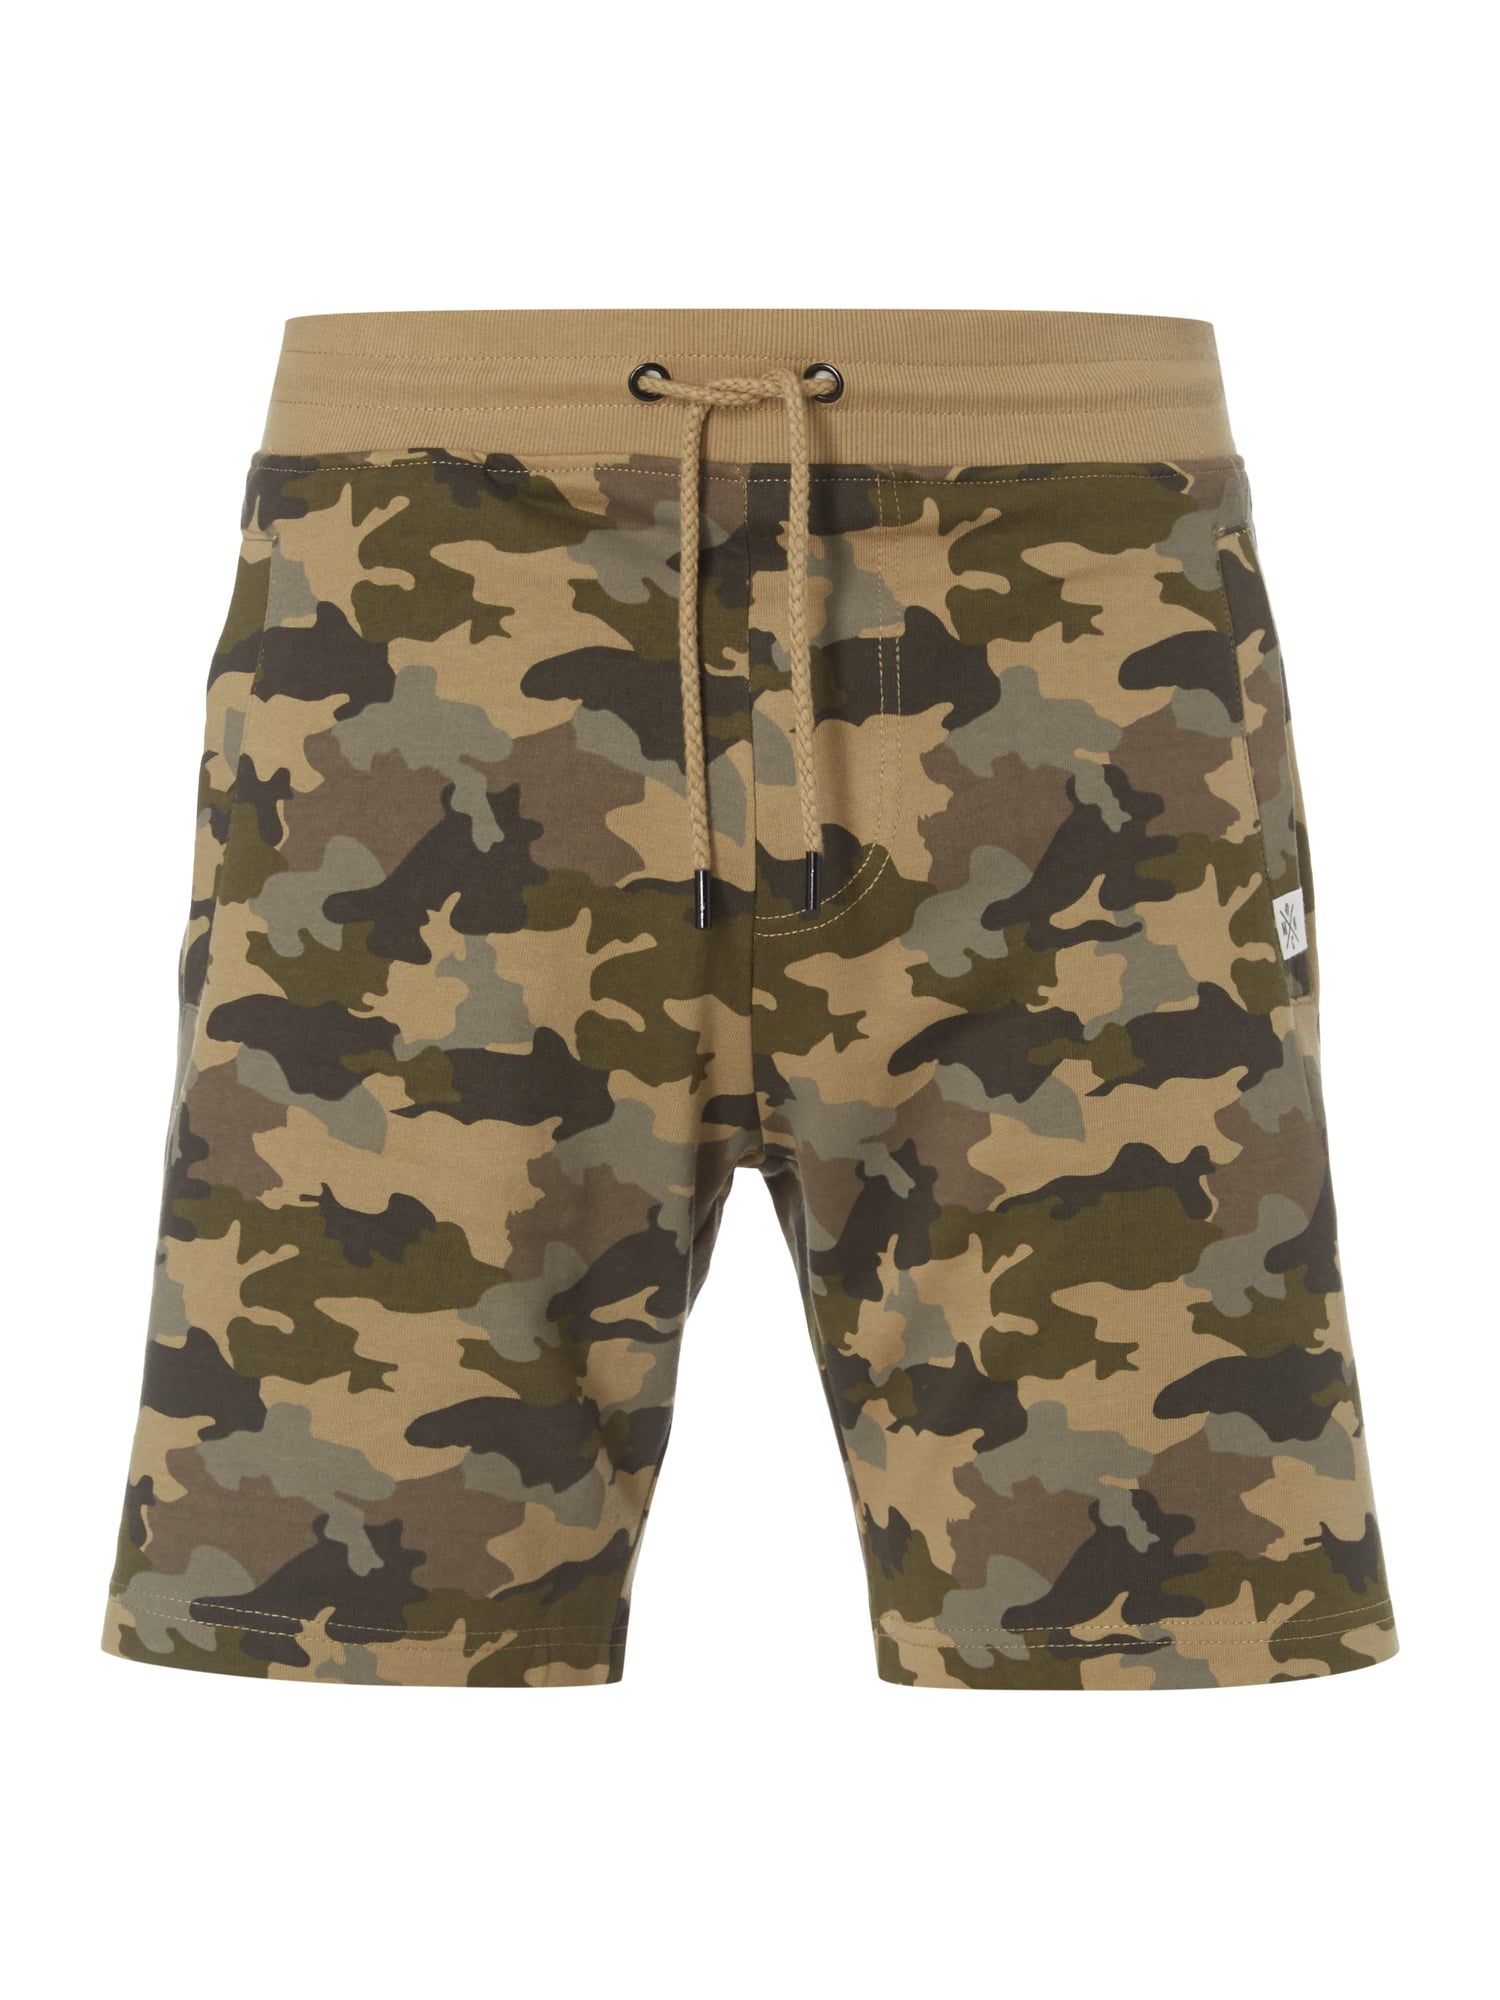 mcneal sweatshorts mit camouflage muster in wei online. Black Bedroom Furniture Sets. Home Design Ideas